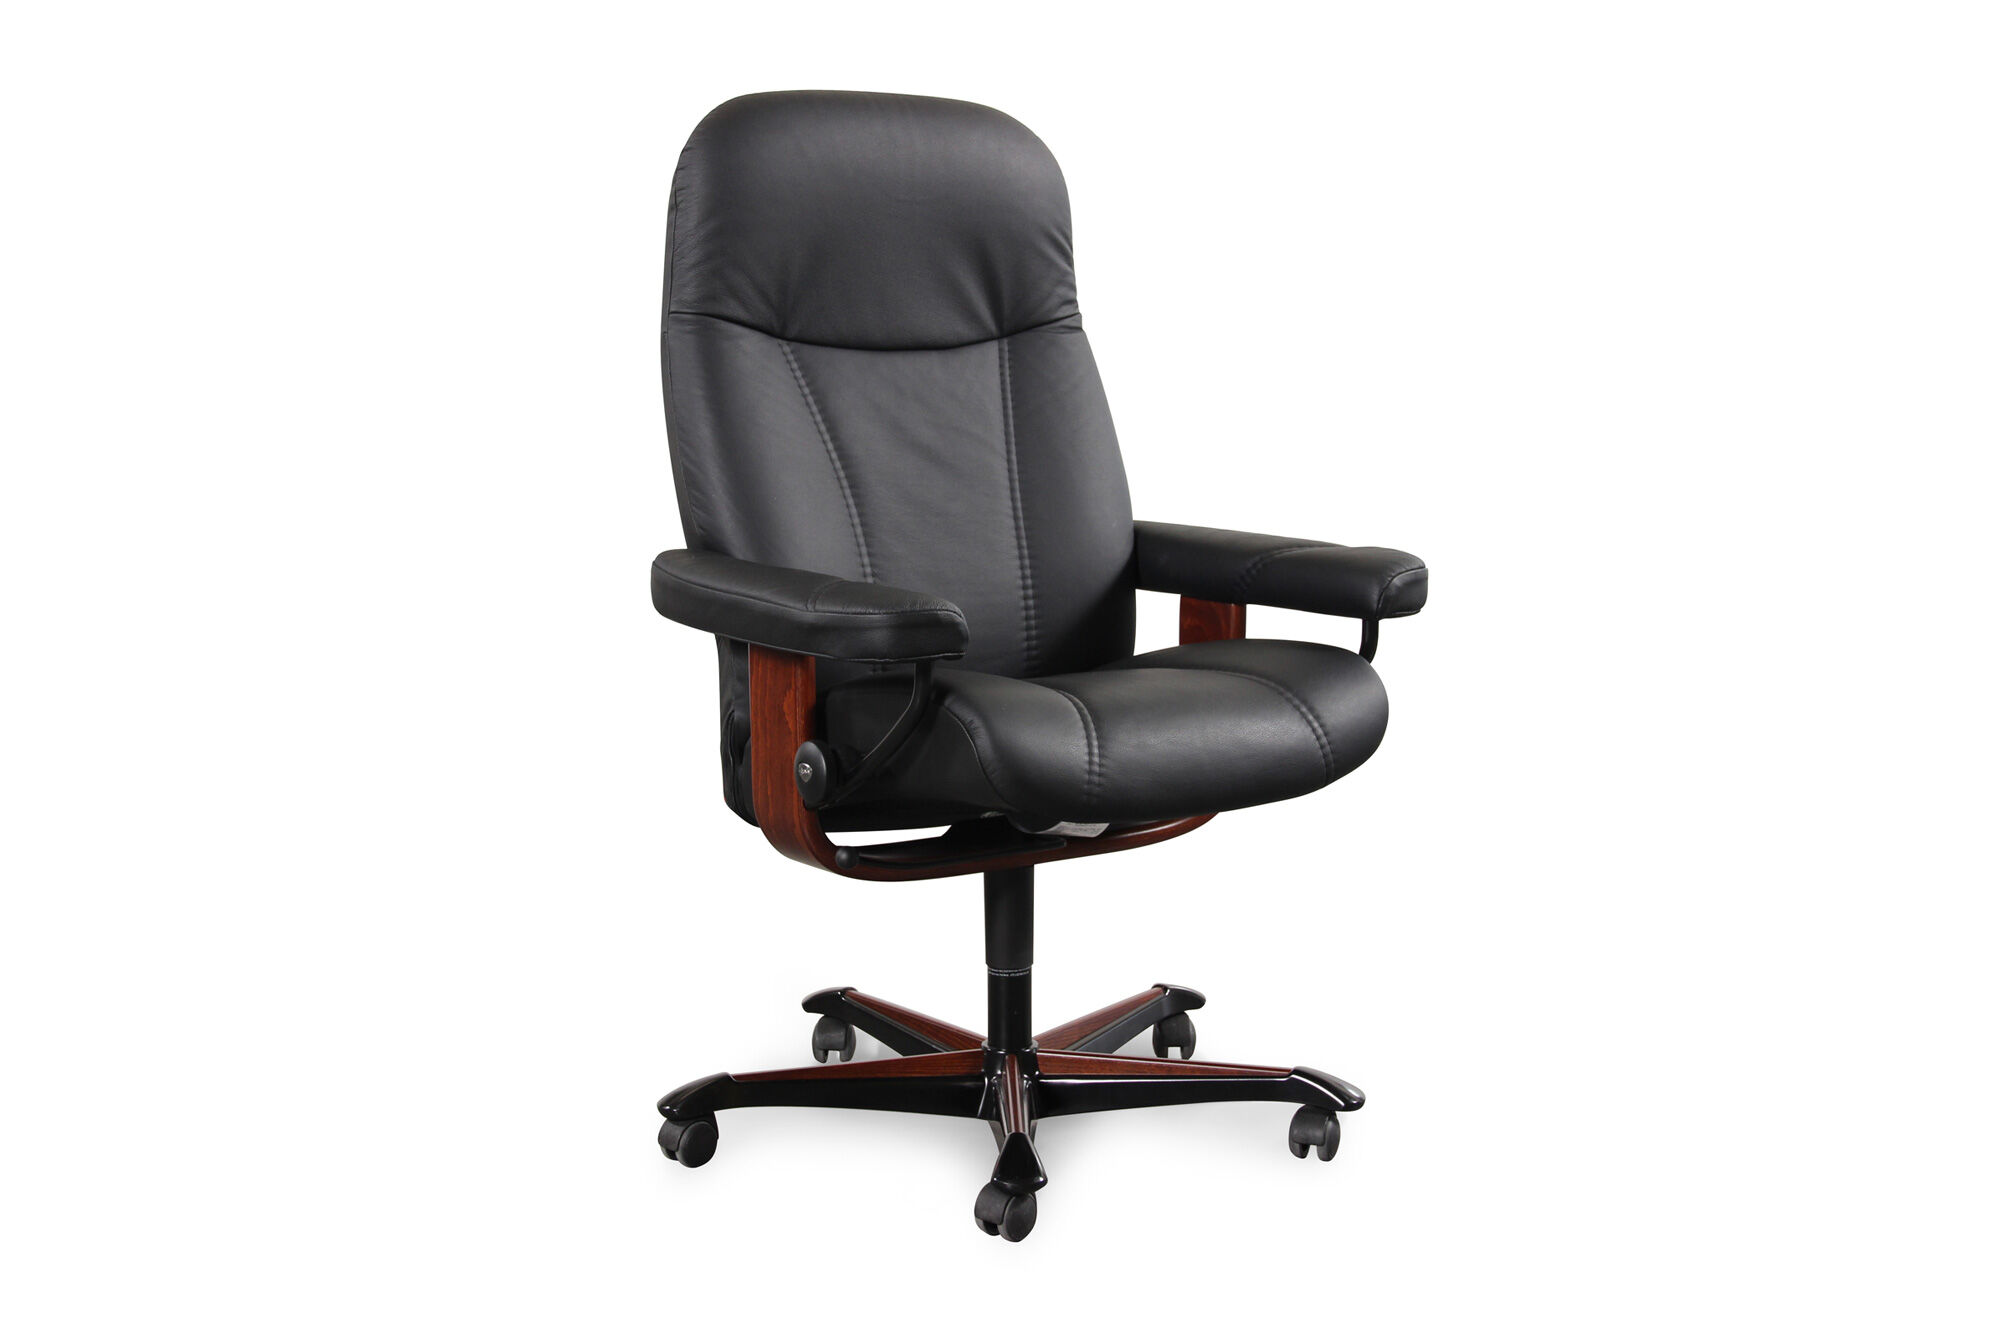 Stressless Outlet Leather Ergonomic Swivel Office Chair In Black Mathis